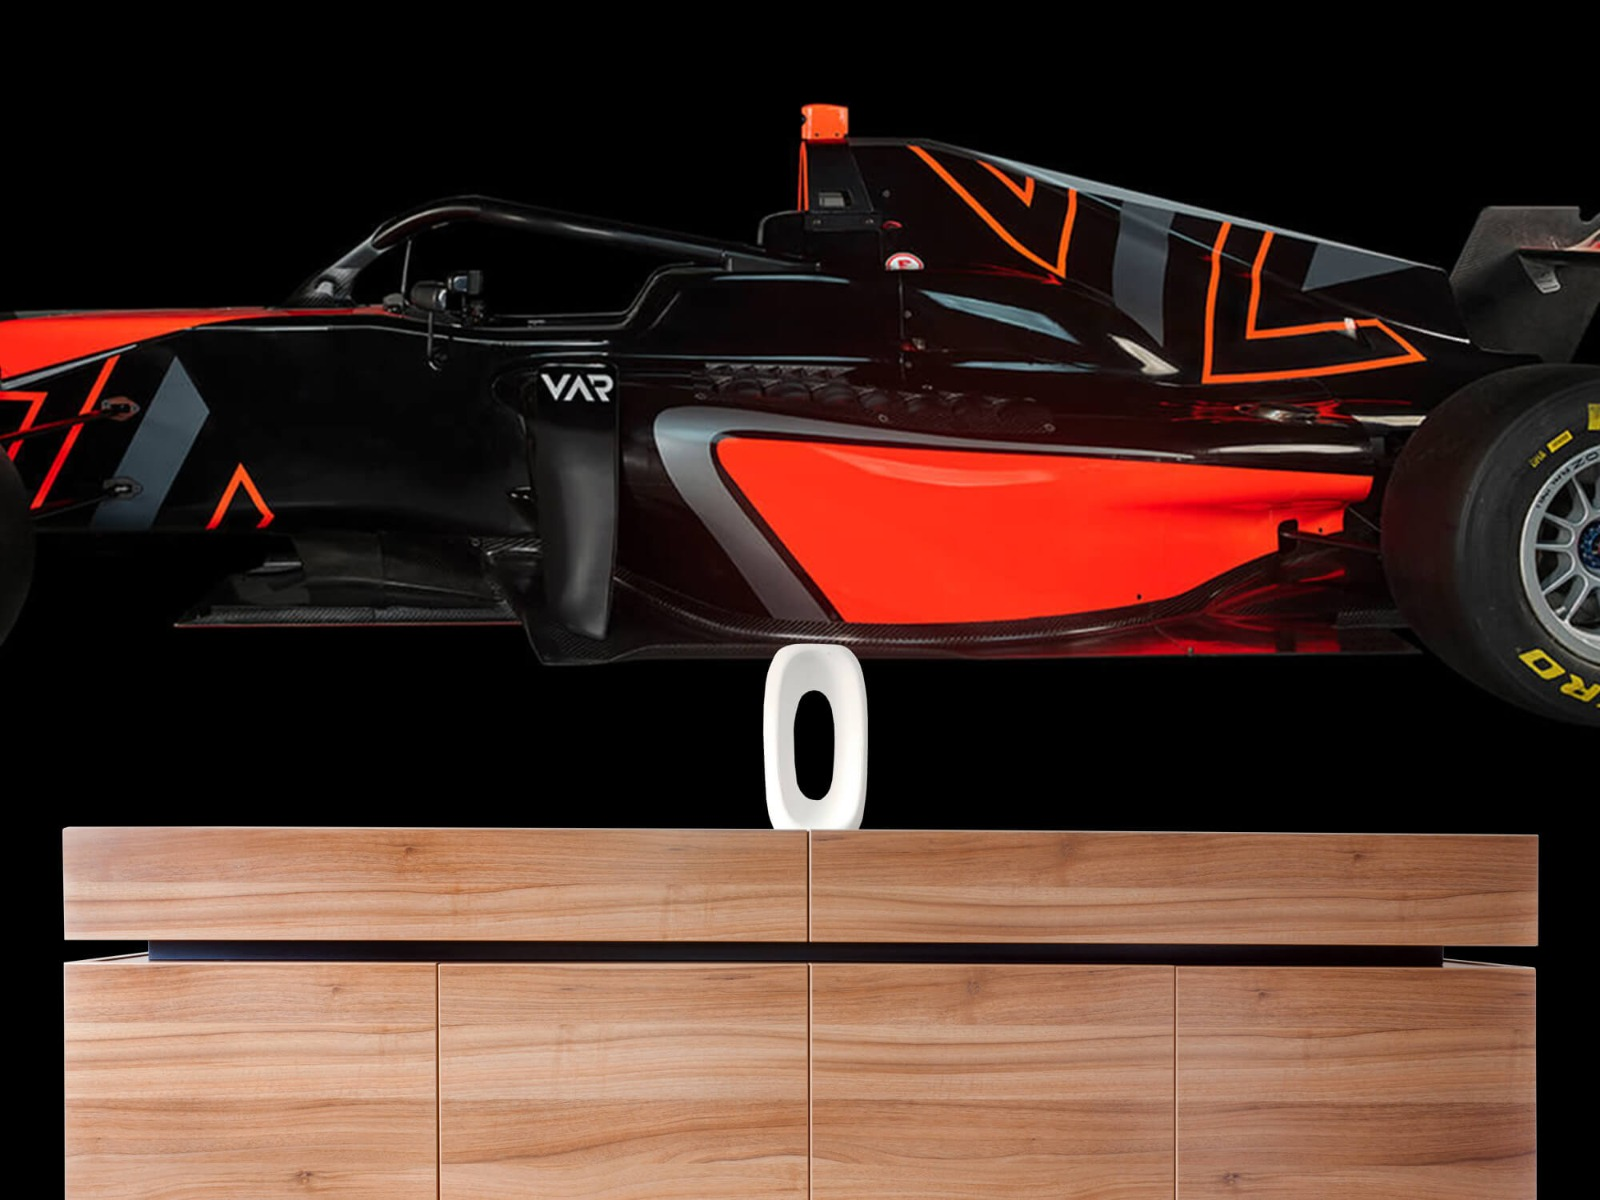 Sportauto's - Formule 3 - Lower side view - dark - Tienerkamer 20